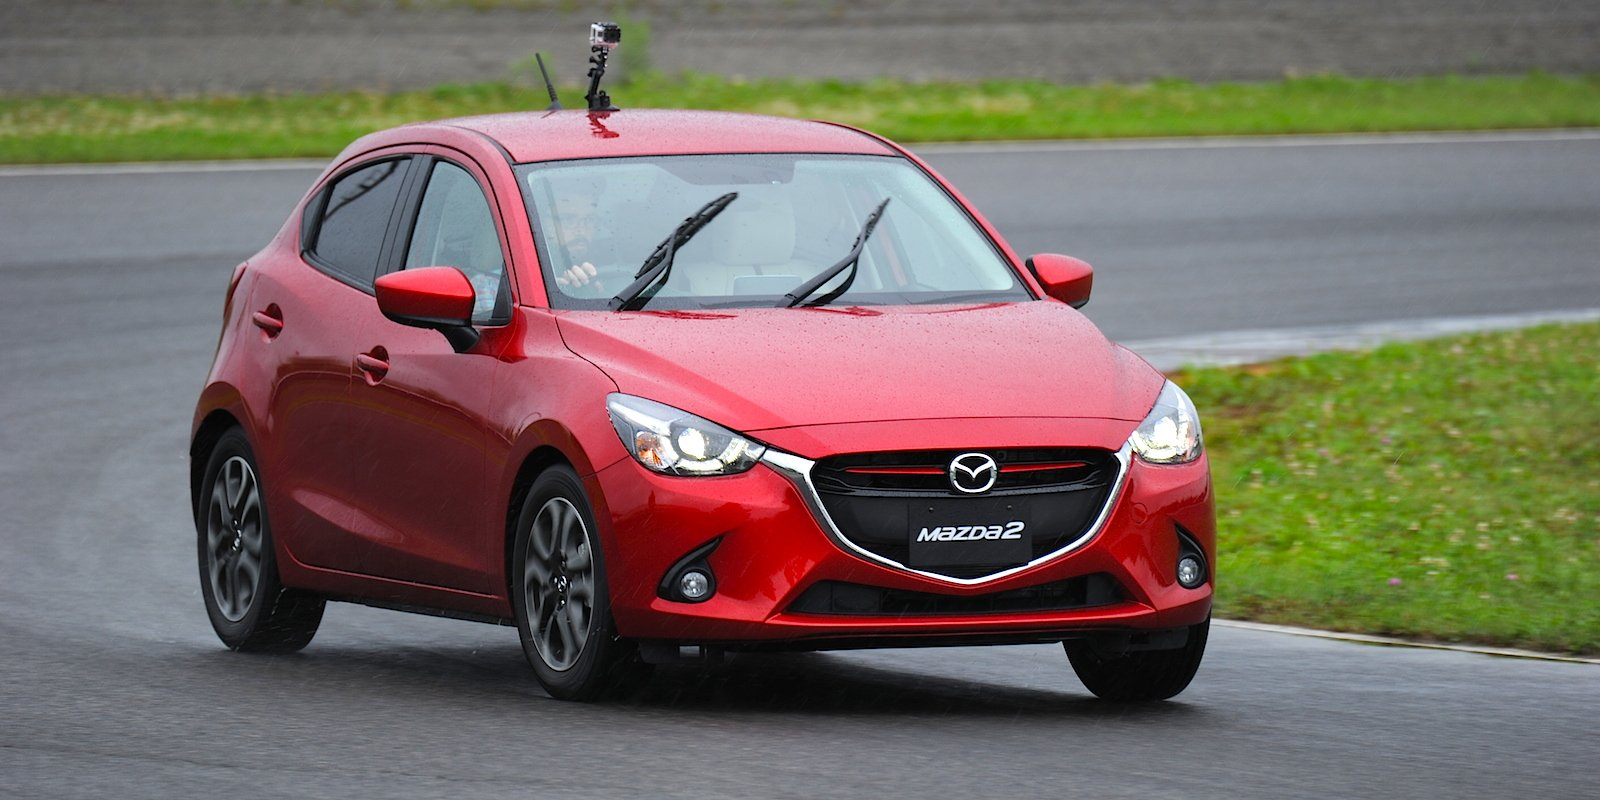 2015 Mazda 2 Review - photos | CarAdvice